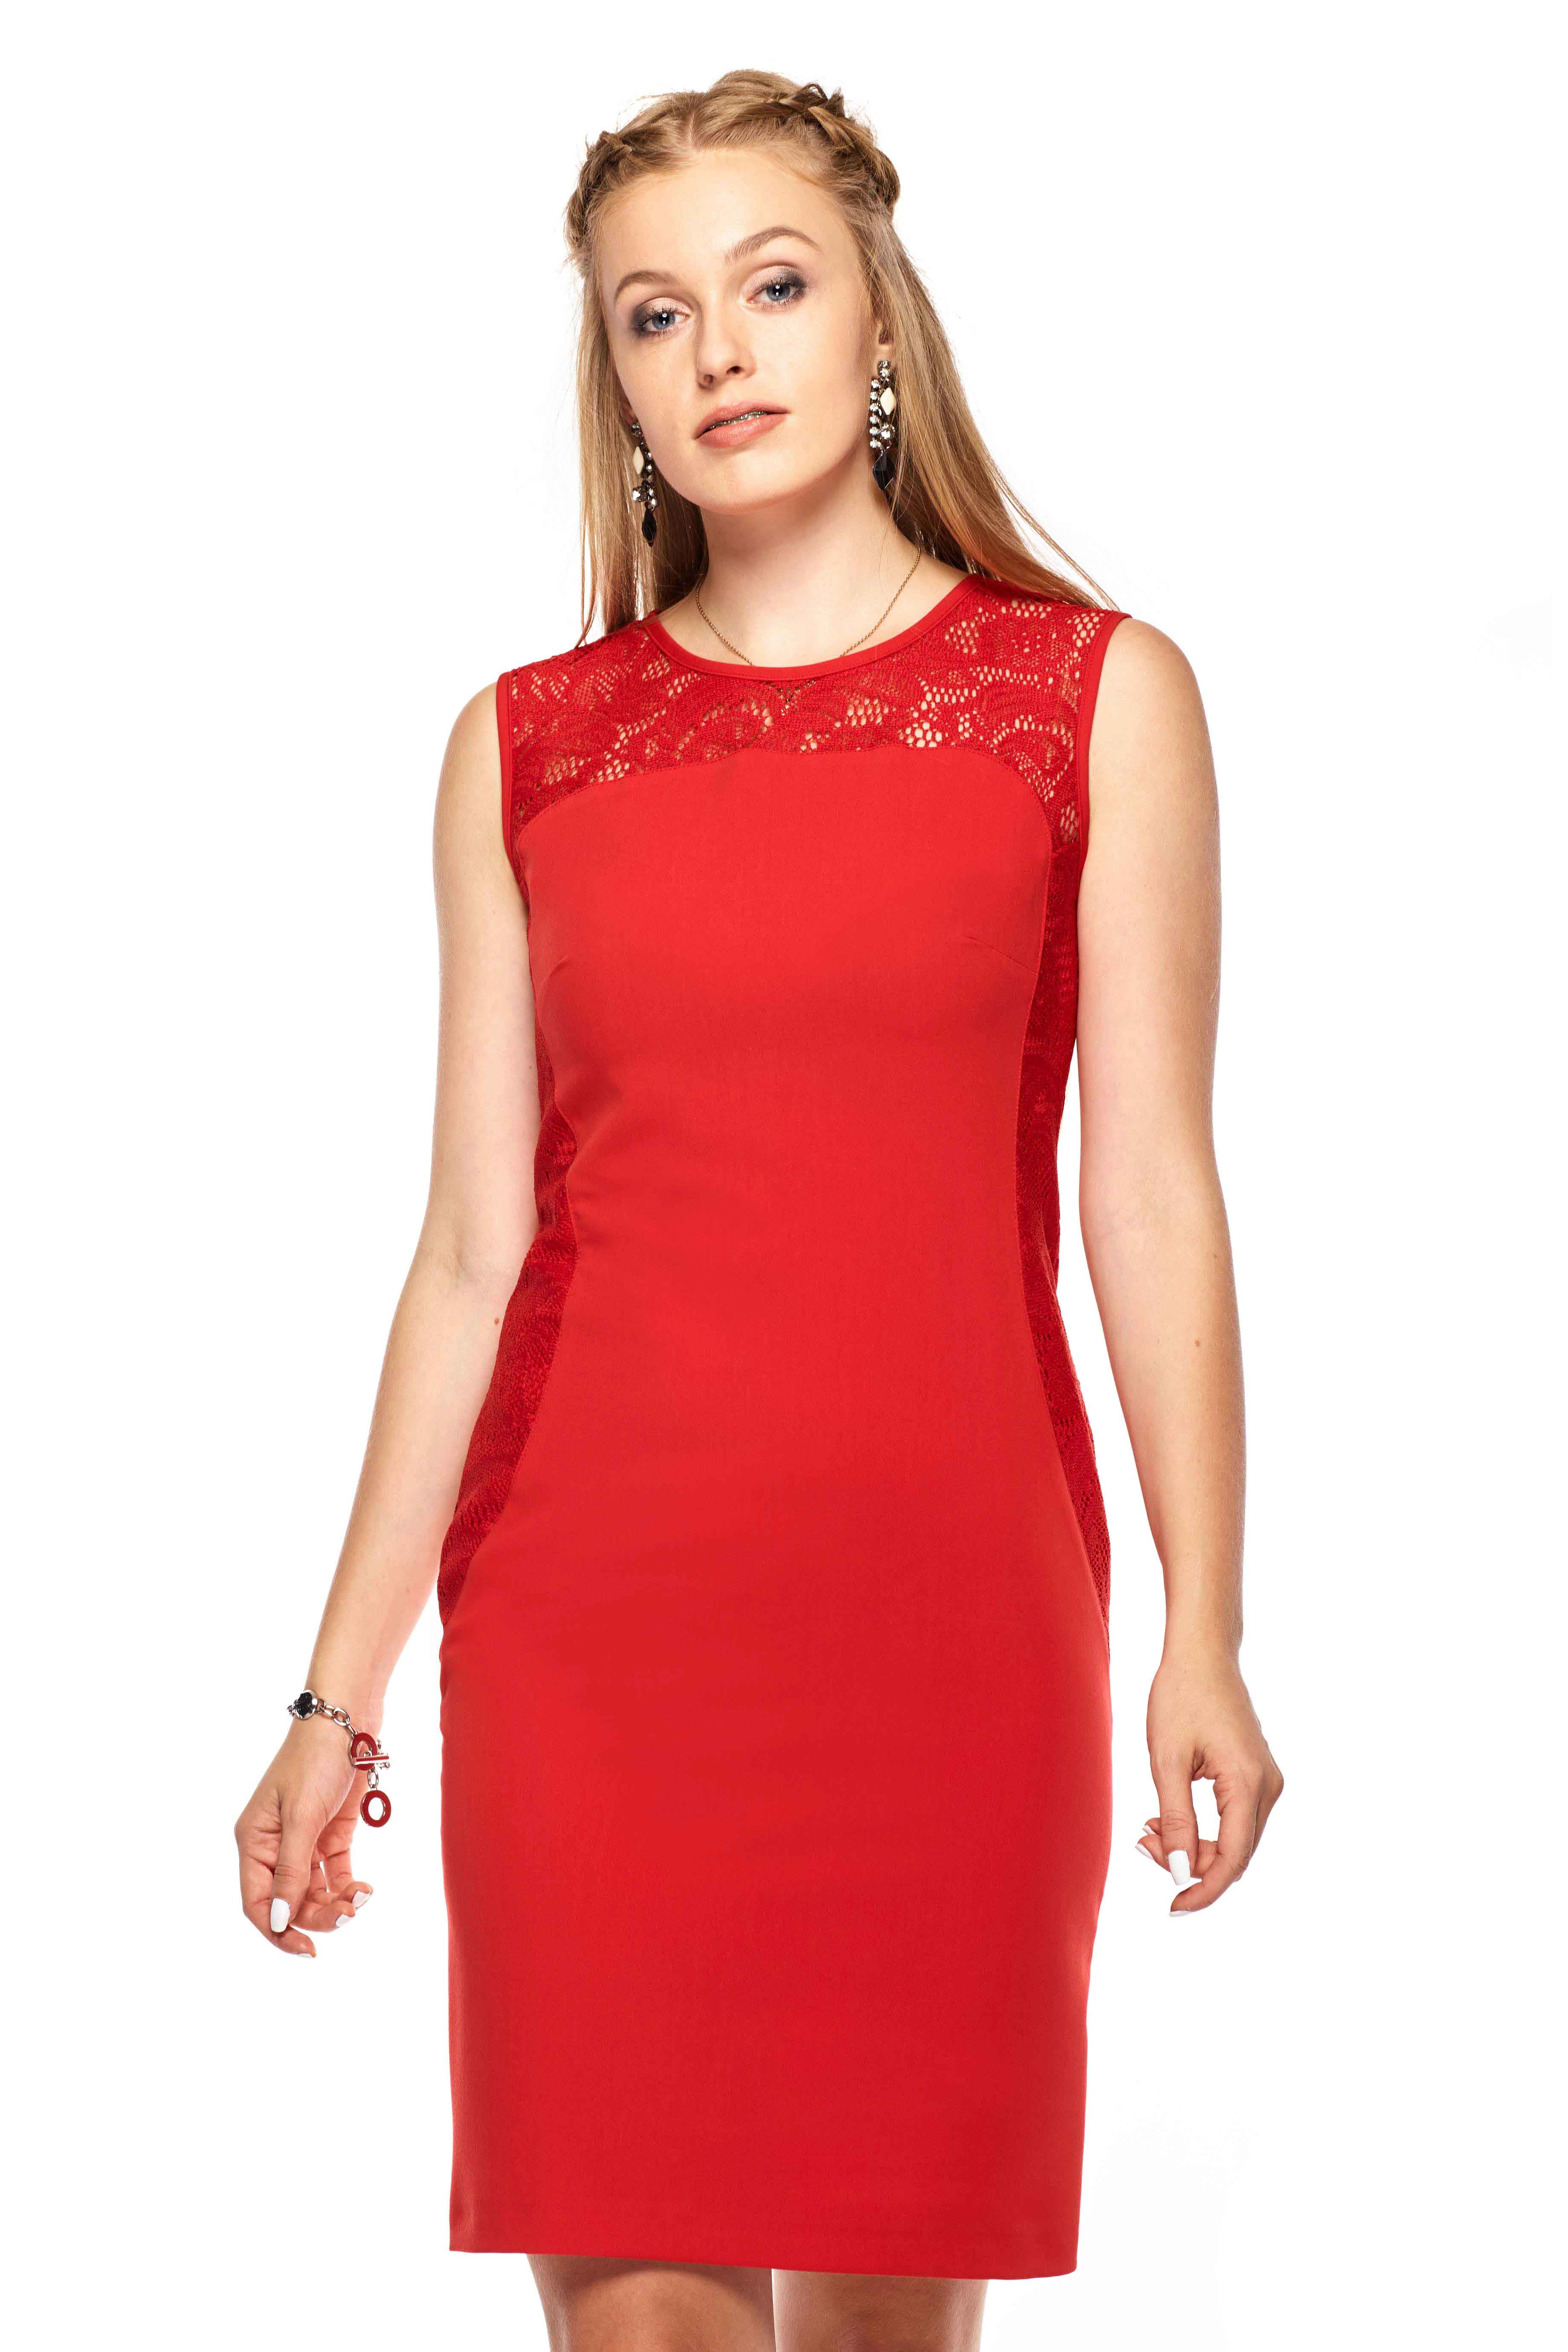 Diana dress in red